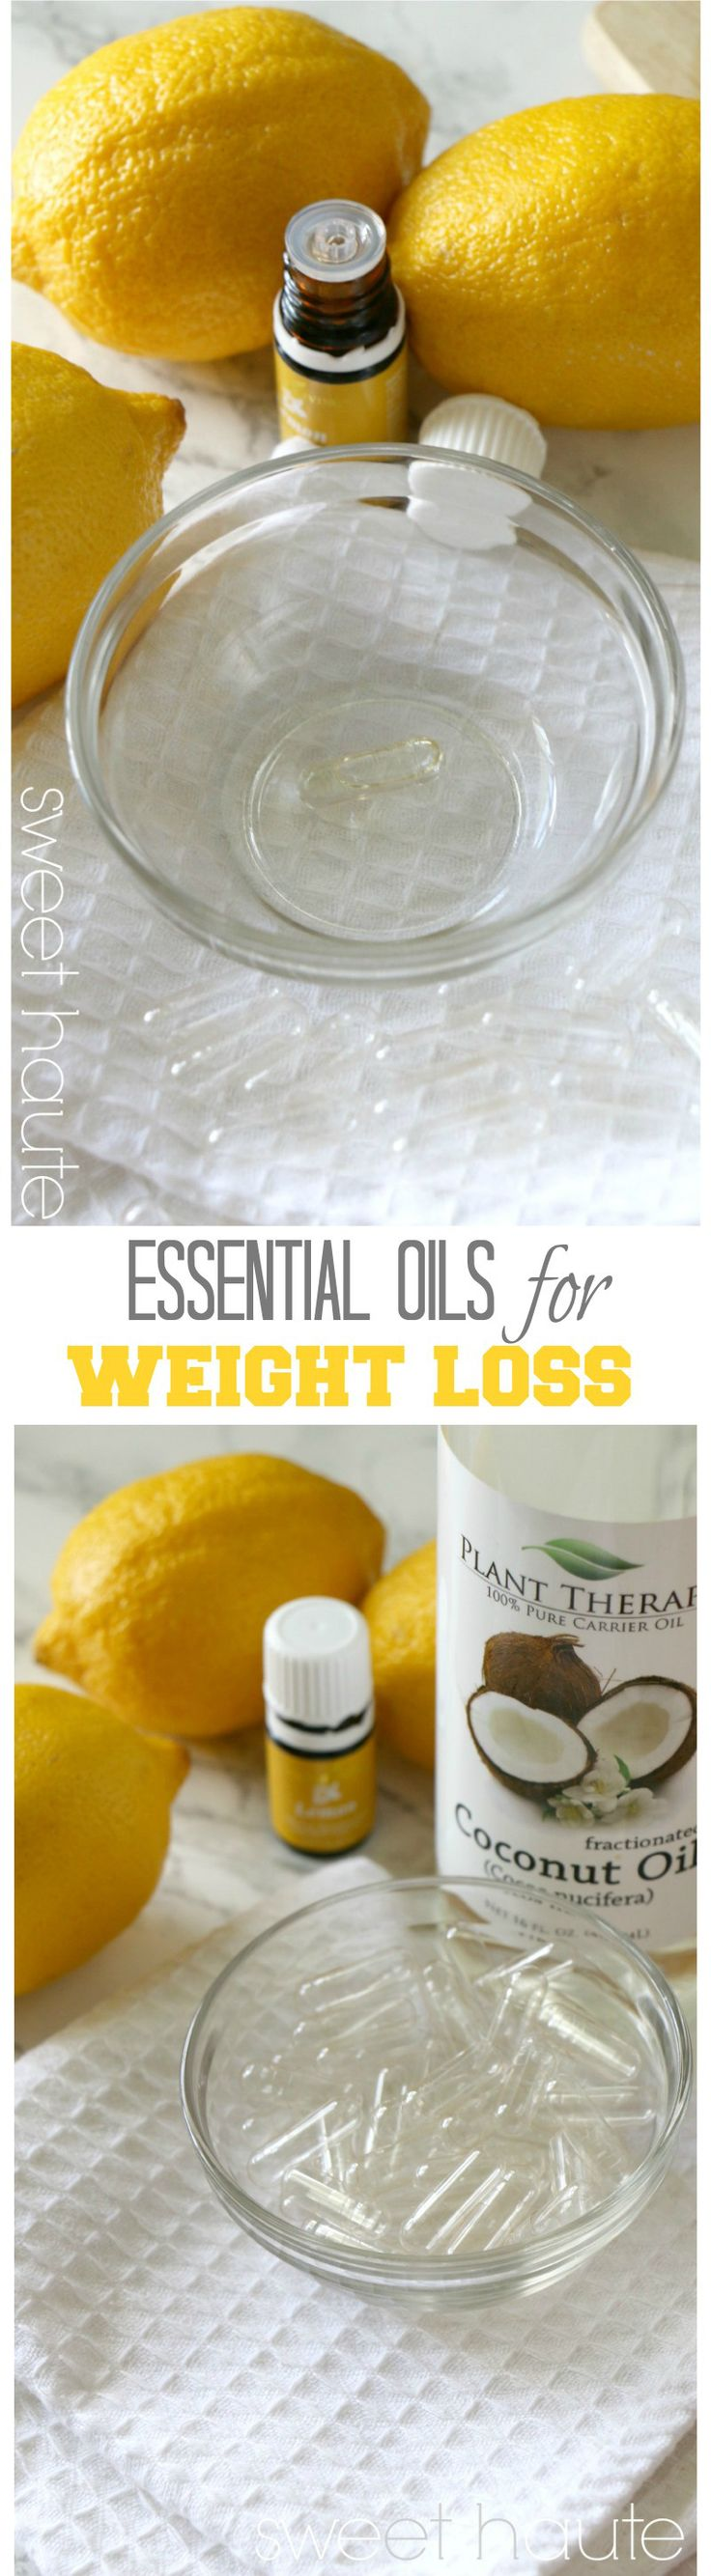 How to use water with lemon for weight loss ehow - Essential Oils For Weight Loss Fast Easy And Natural Tutorial Diet Sweet Haute Lemon Essential Oil Grapefruit Essential Oil Pin Now